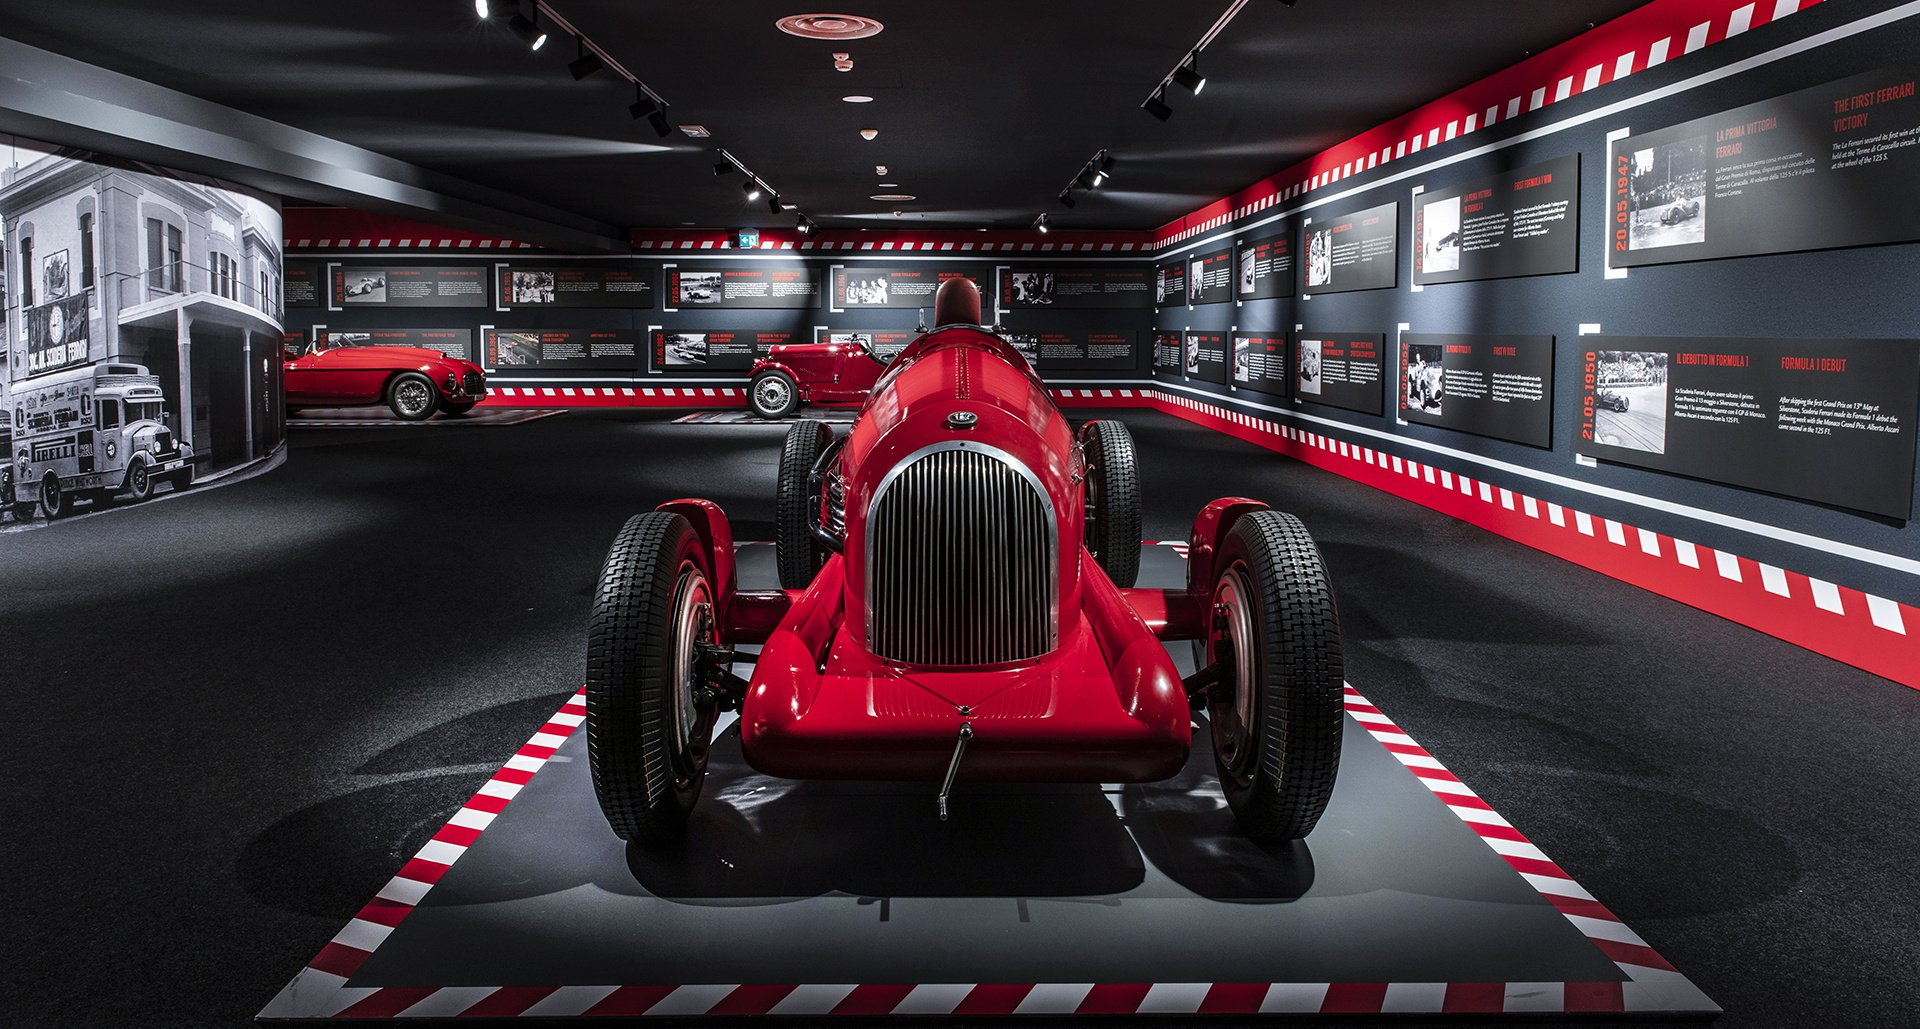 Ferrari-90-Years-Of-Racing-Special-Exhibition-8